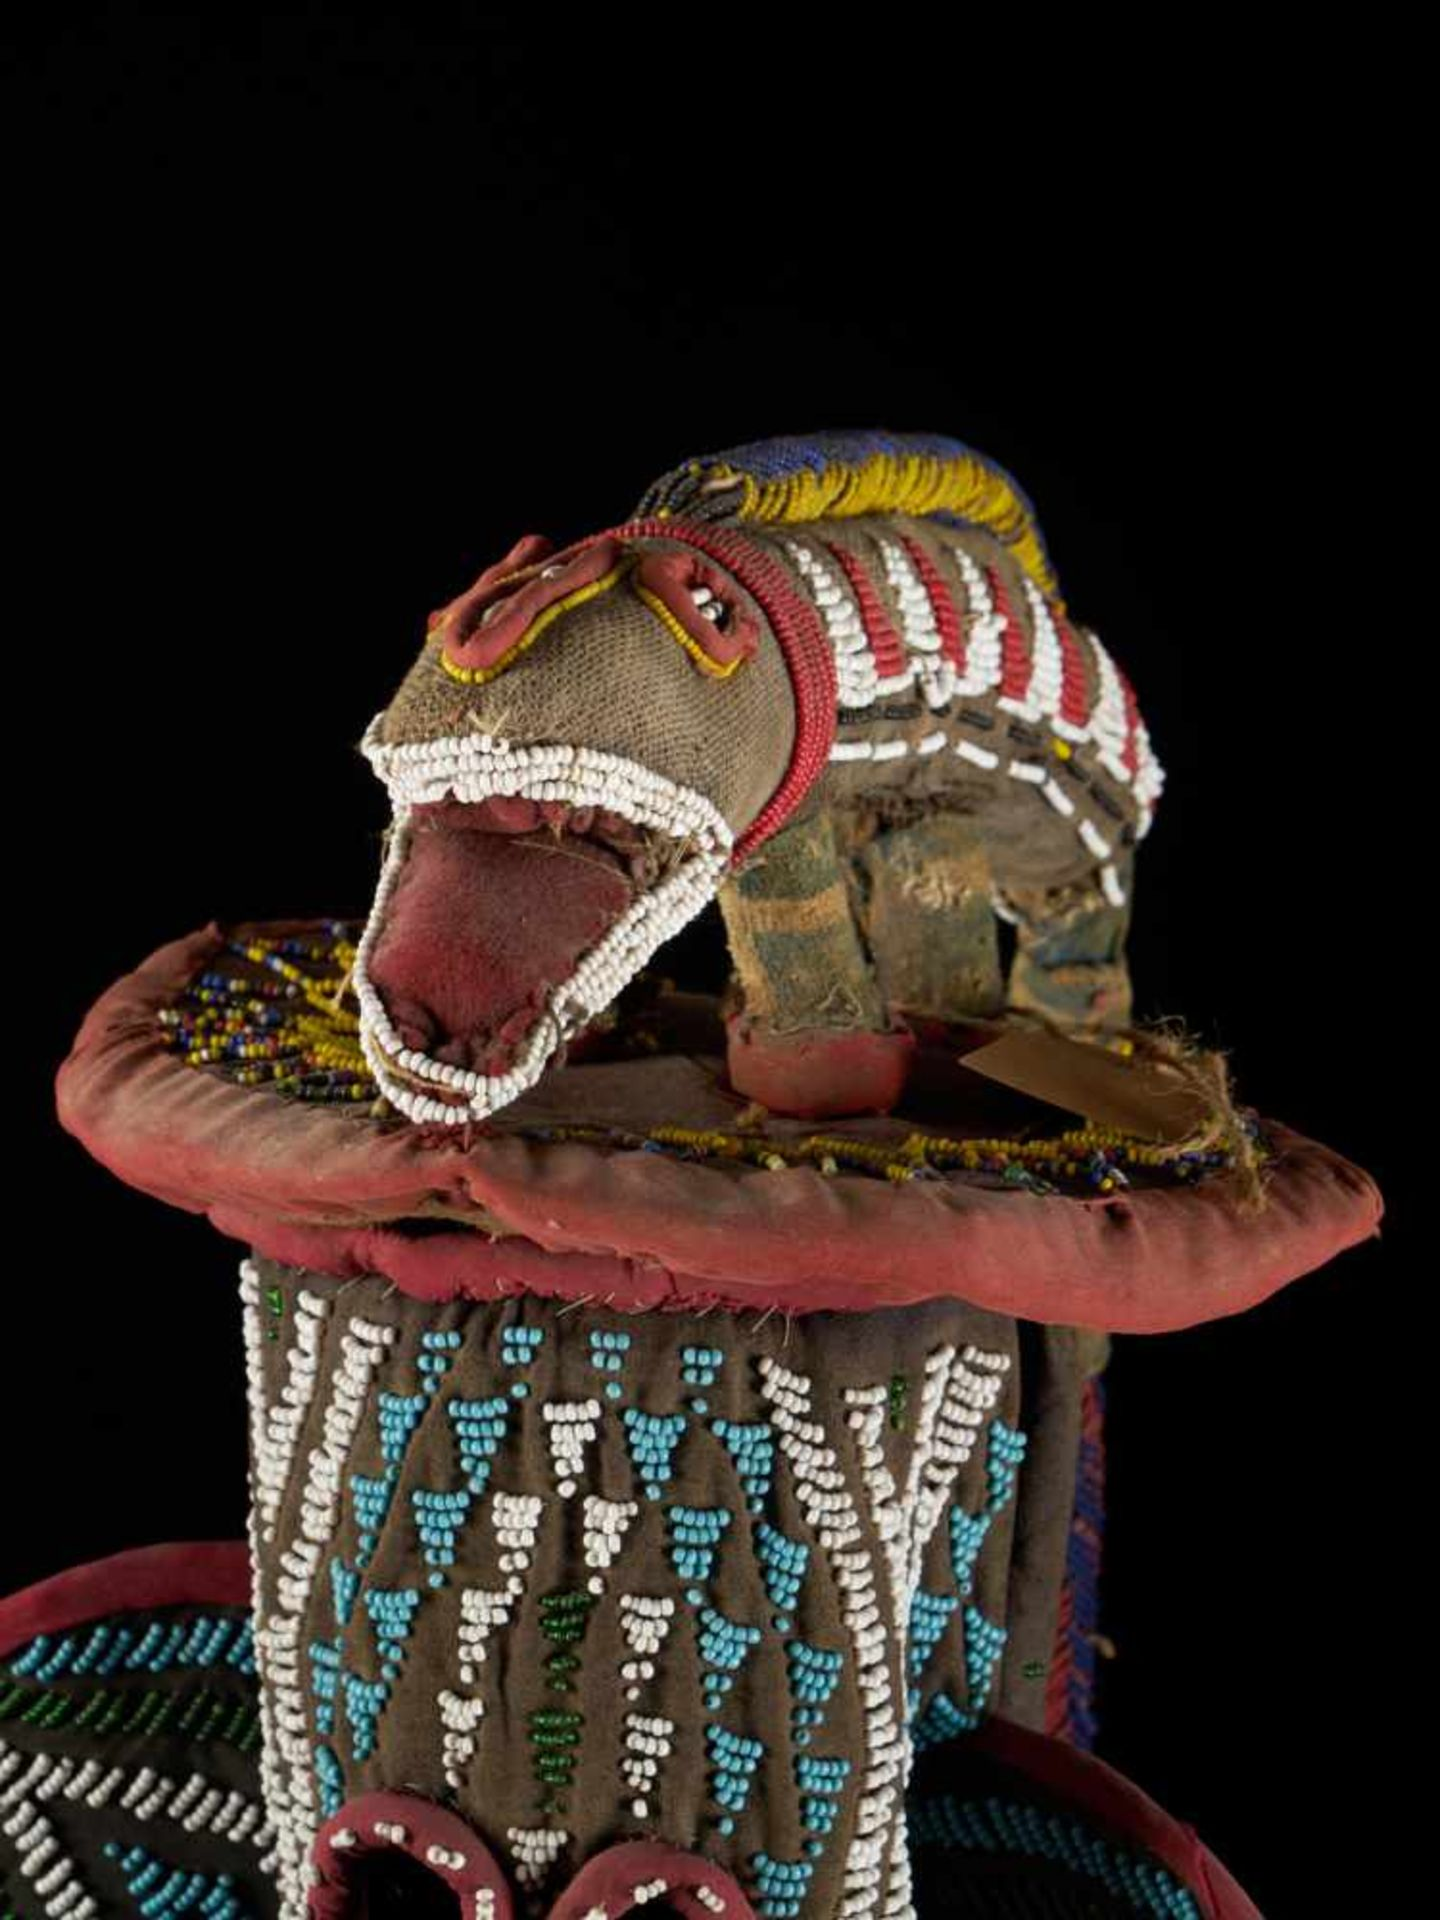 Beaded Kuosi Elephant Mask Topped With Leopard Figure - Tribal ArtThis elephant mask is - Bild 9 aus 15